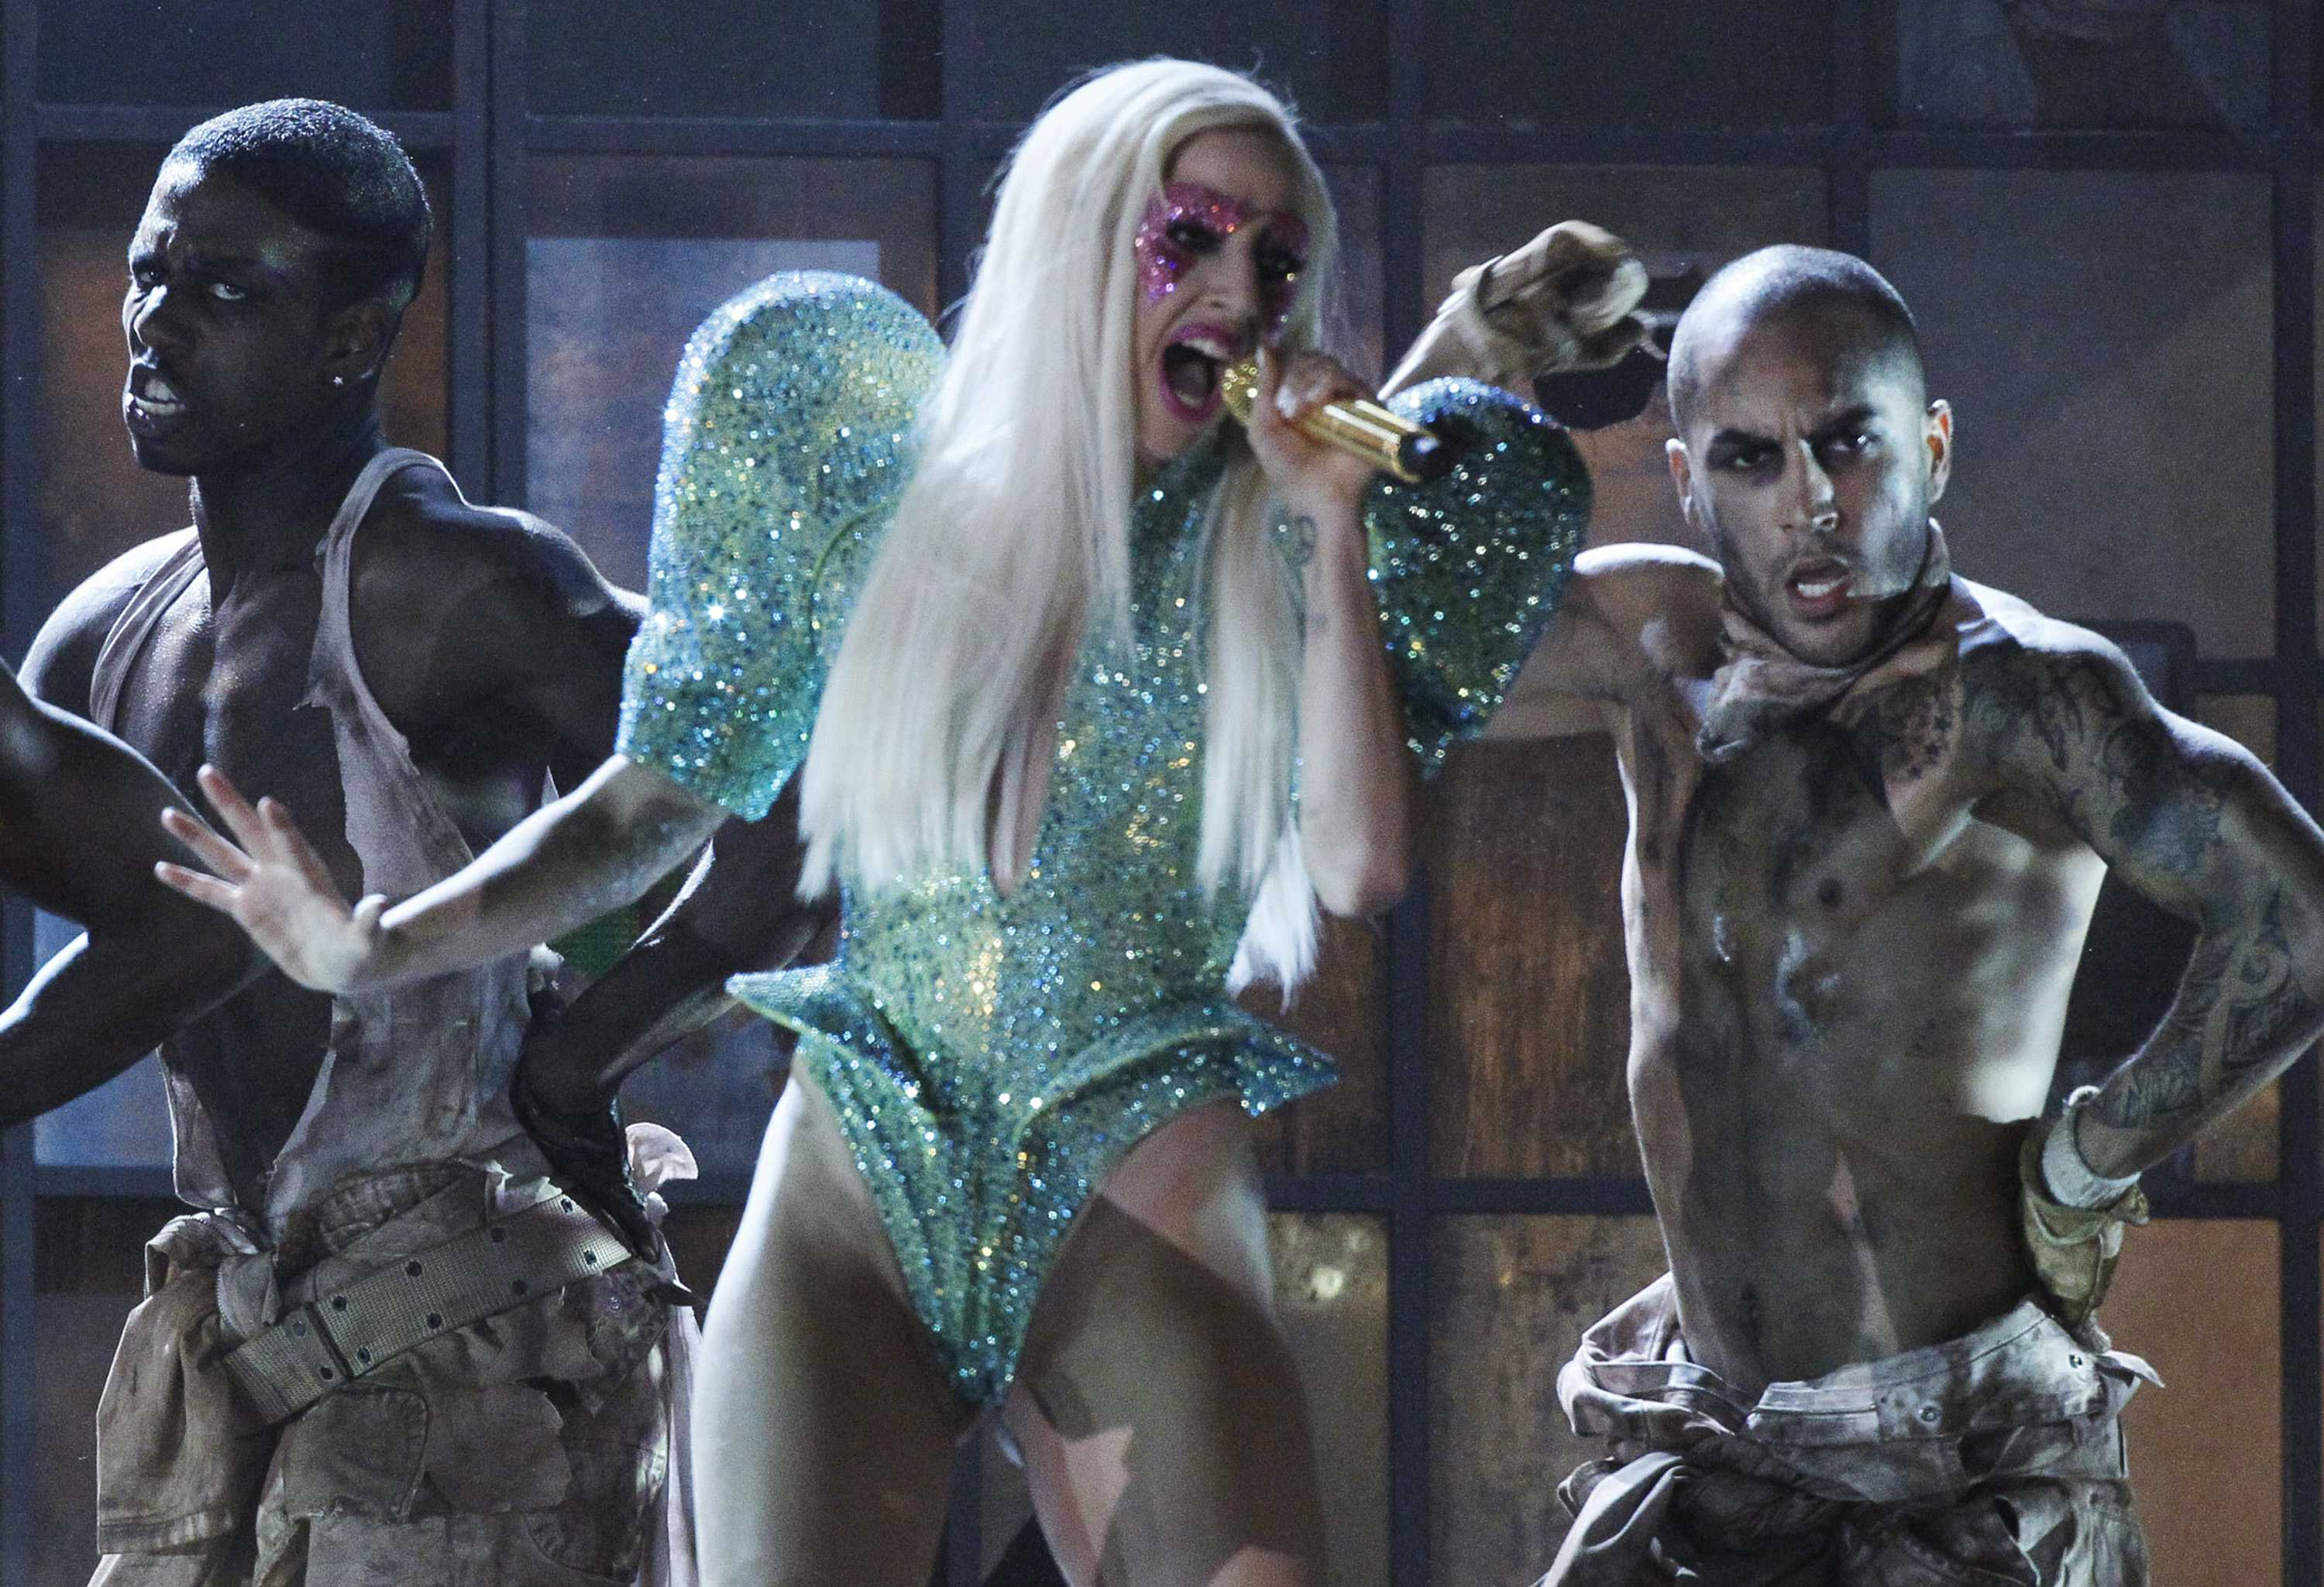 Lady+Gaga+pictured+during+her+performance